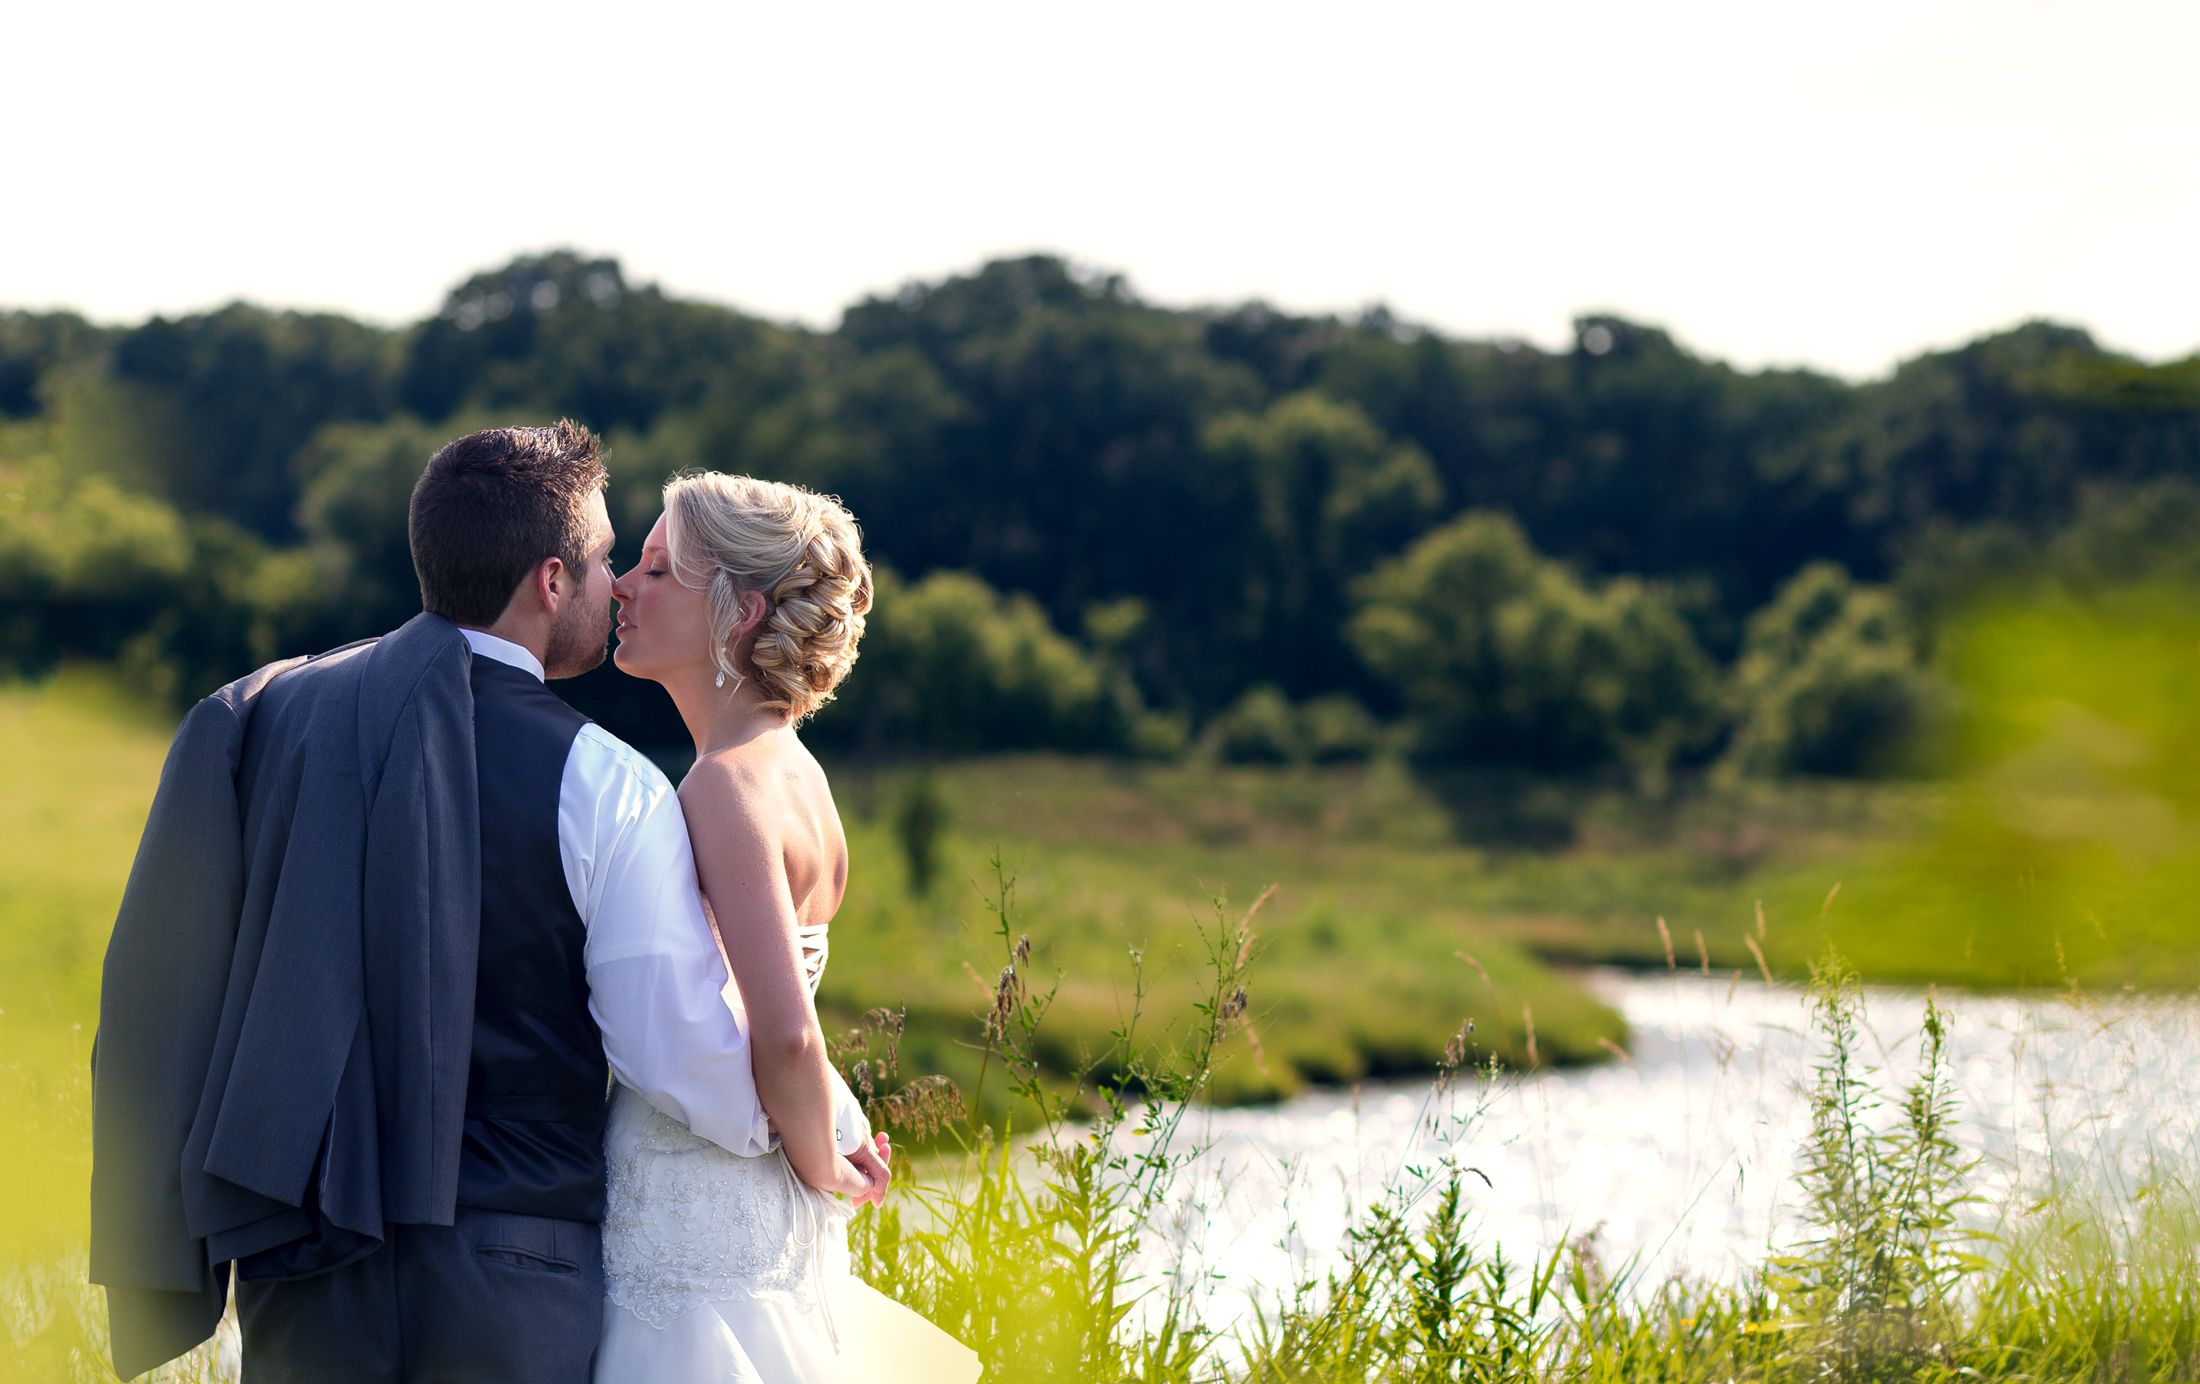 Twinbliss_Photography_Chicago_Weddings_Engagements_Woods_Elgin_Illinois_twins_meachem_Forest_Preserv